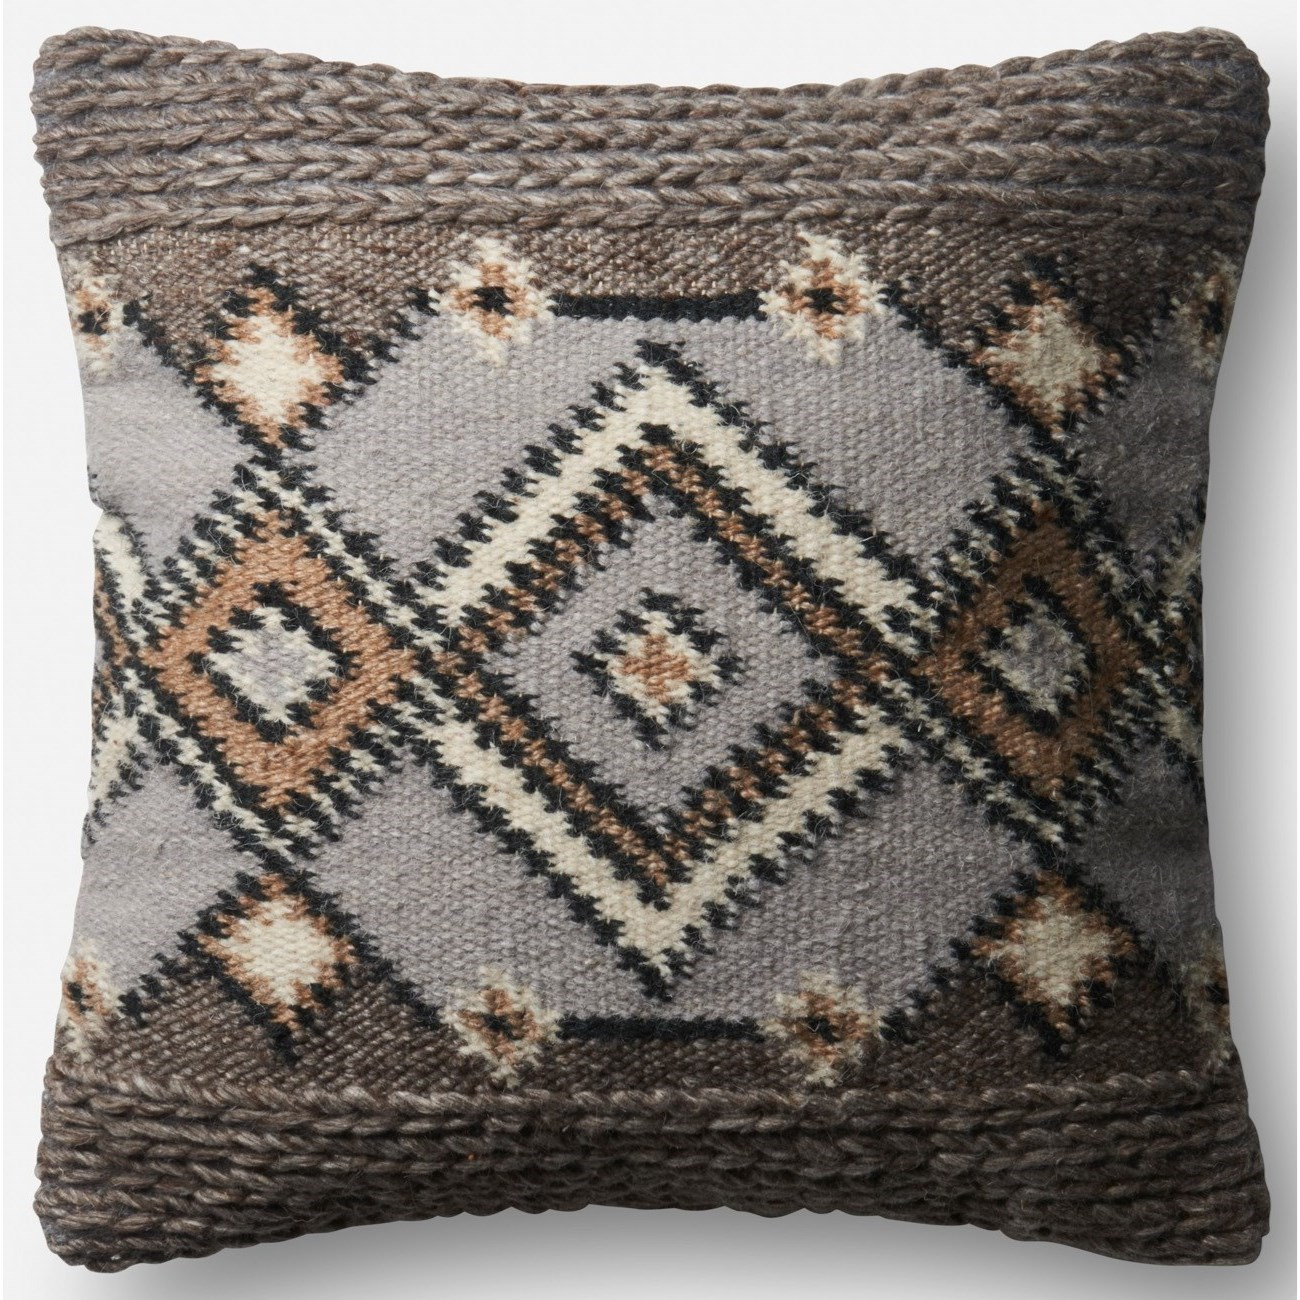 "Indoor/Outdoor Pillows 18"" X 18""  Pillow w/ Down Fill by Loloi Rugs at Sprintz Furniture"